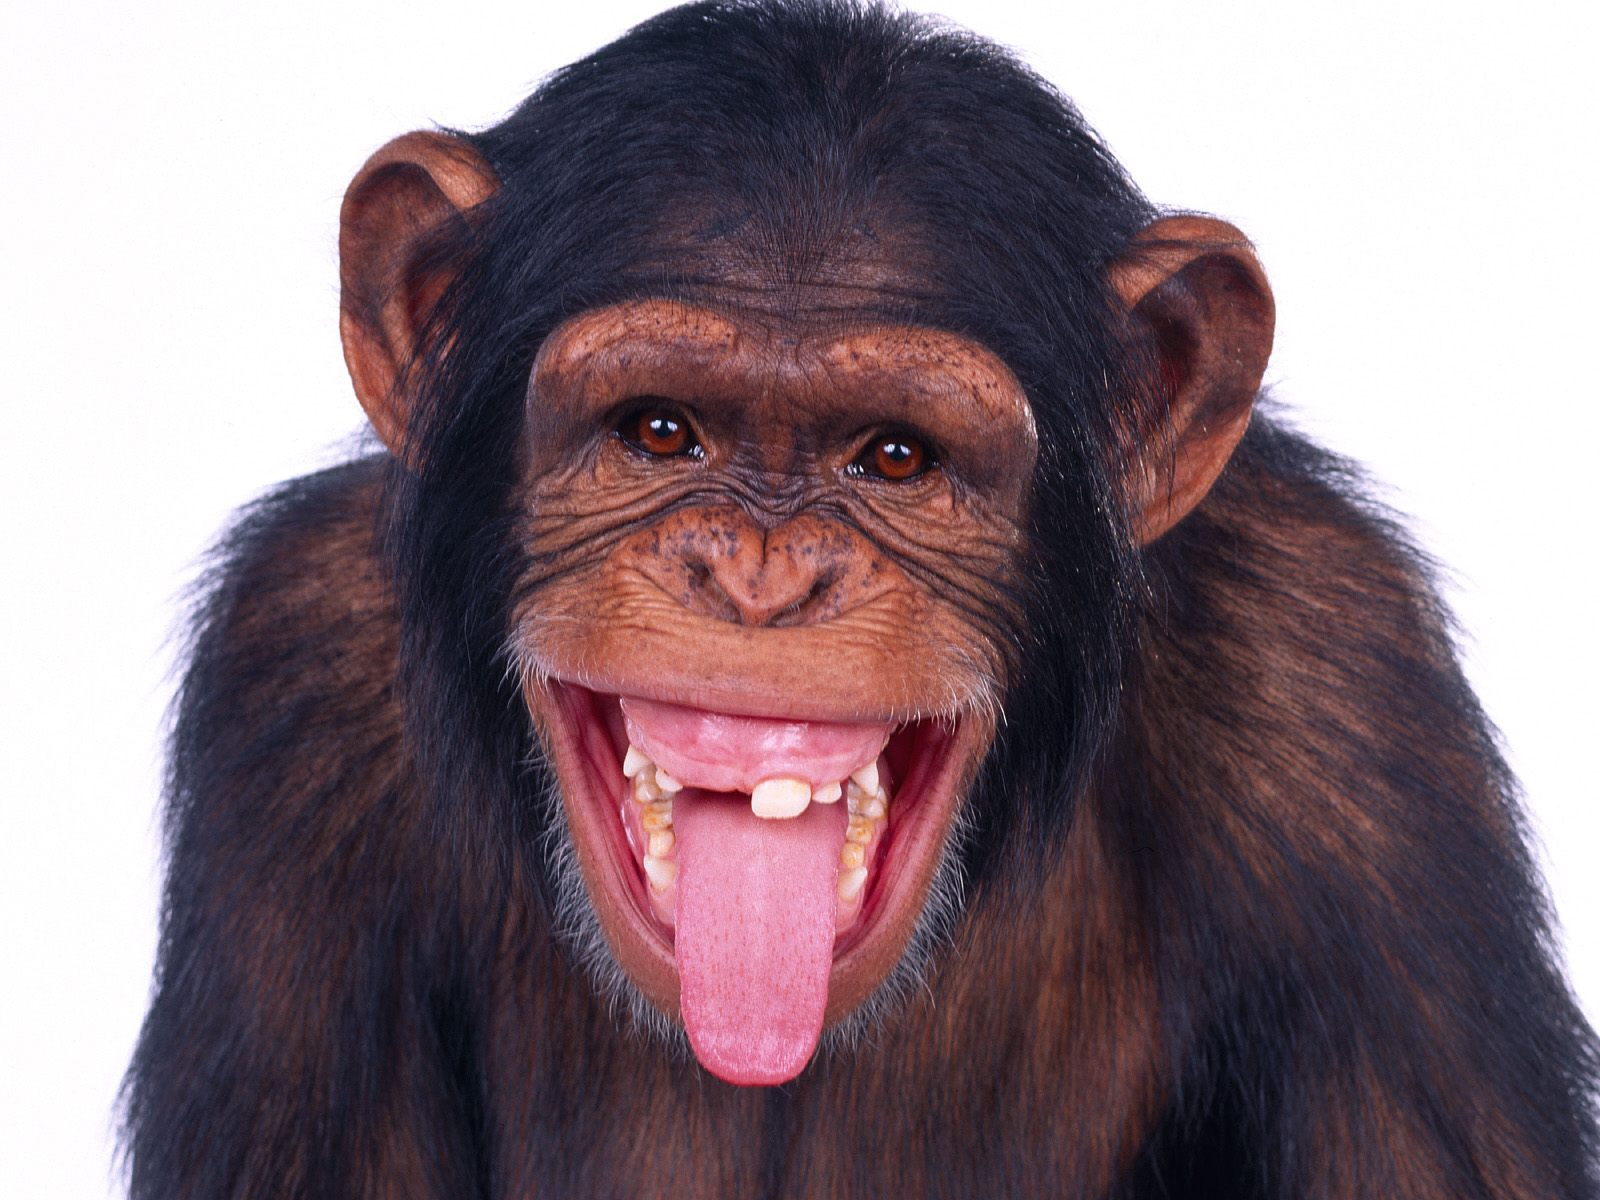 42 Monkey Photos and Pictures, RT41 HD Quality Wallpapers